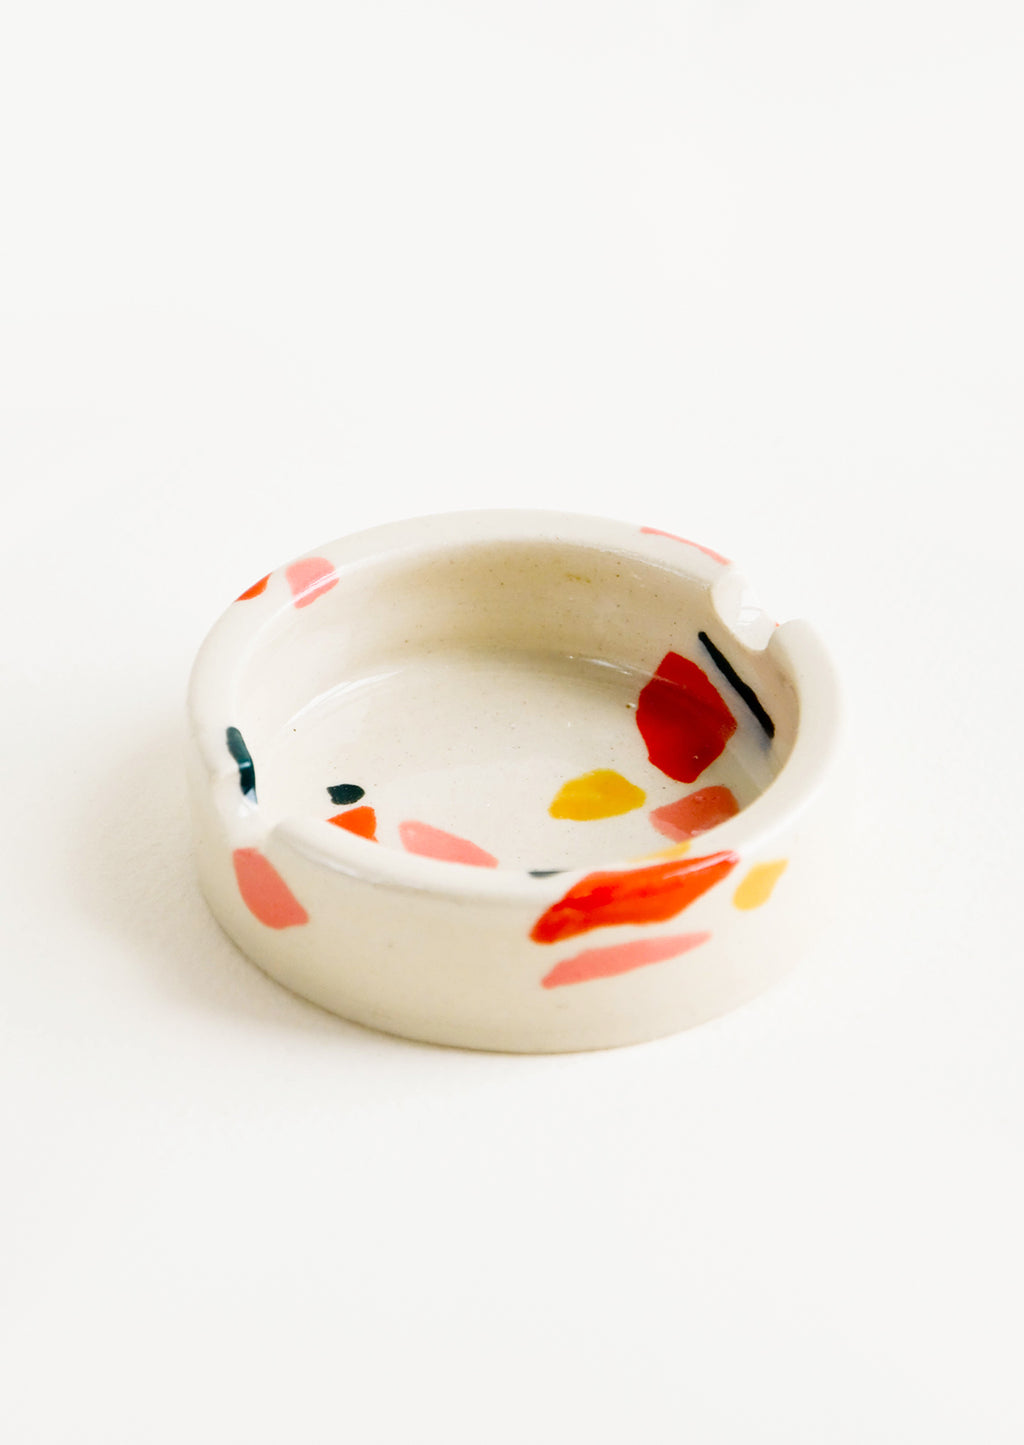 Warm Colors: Ceramic ashtray with allover hand painted terrazzo pattern in a variety of warm colors